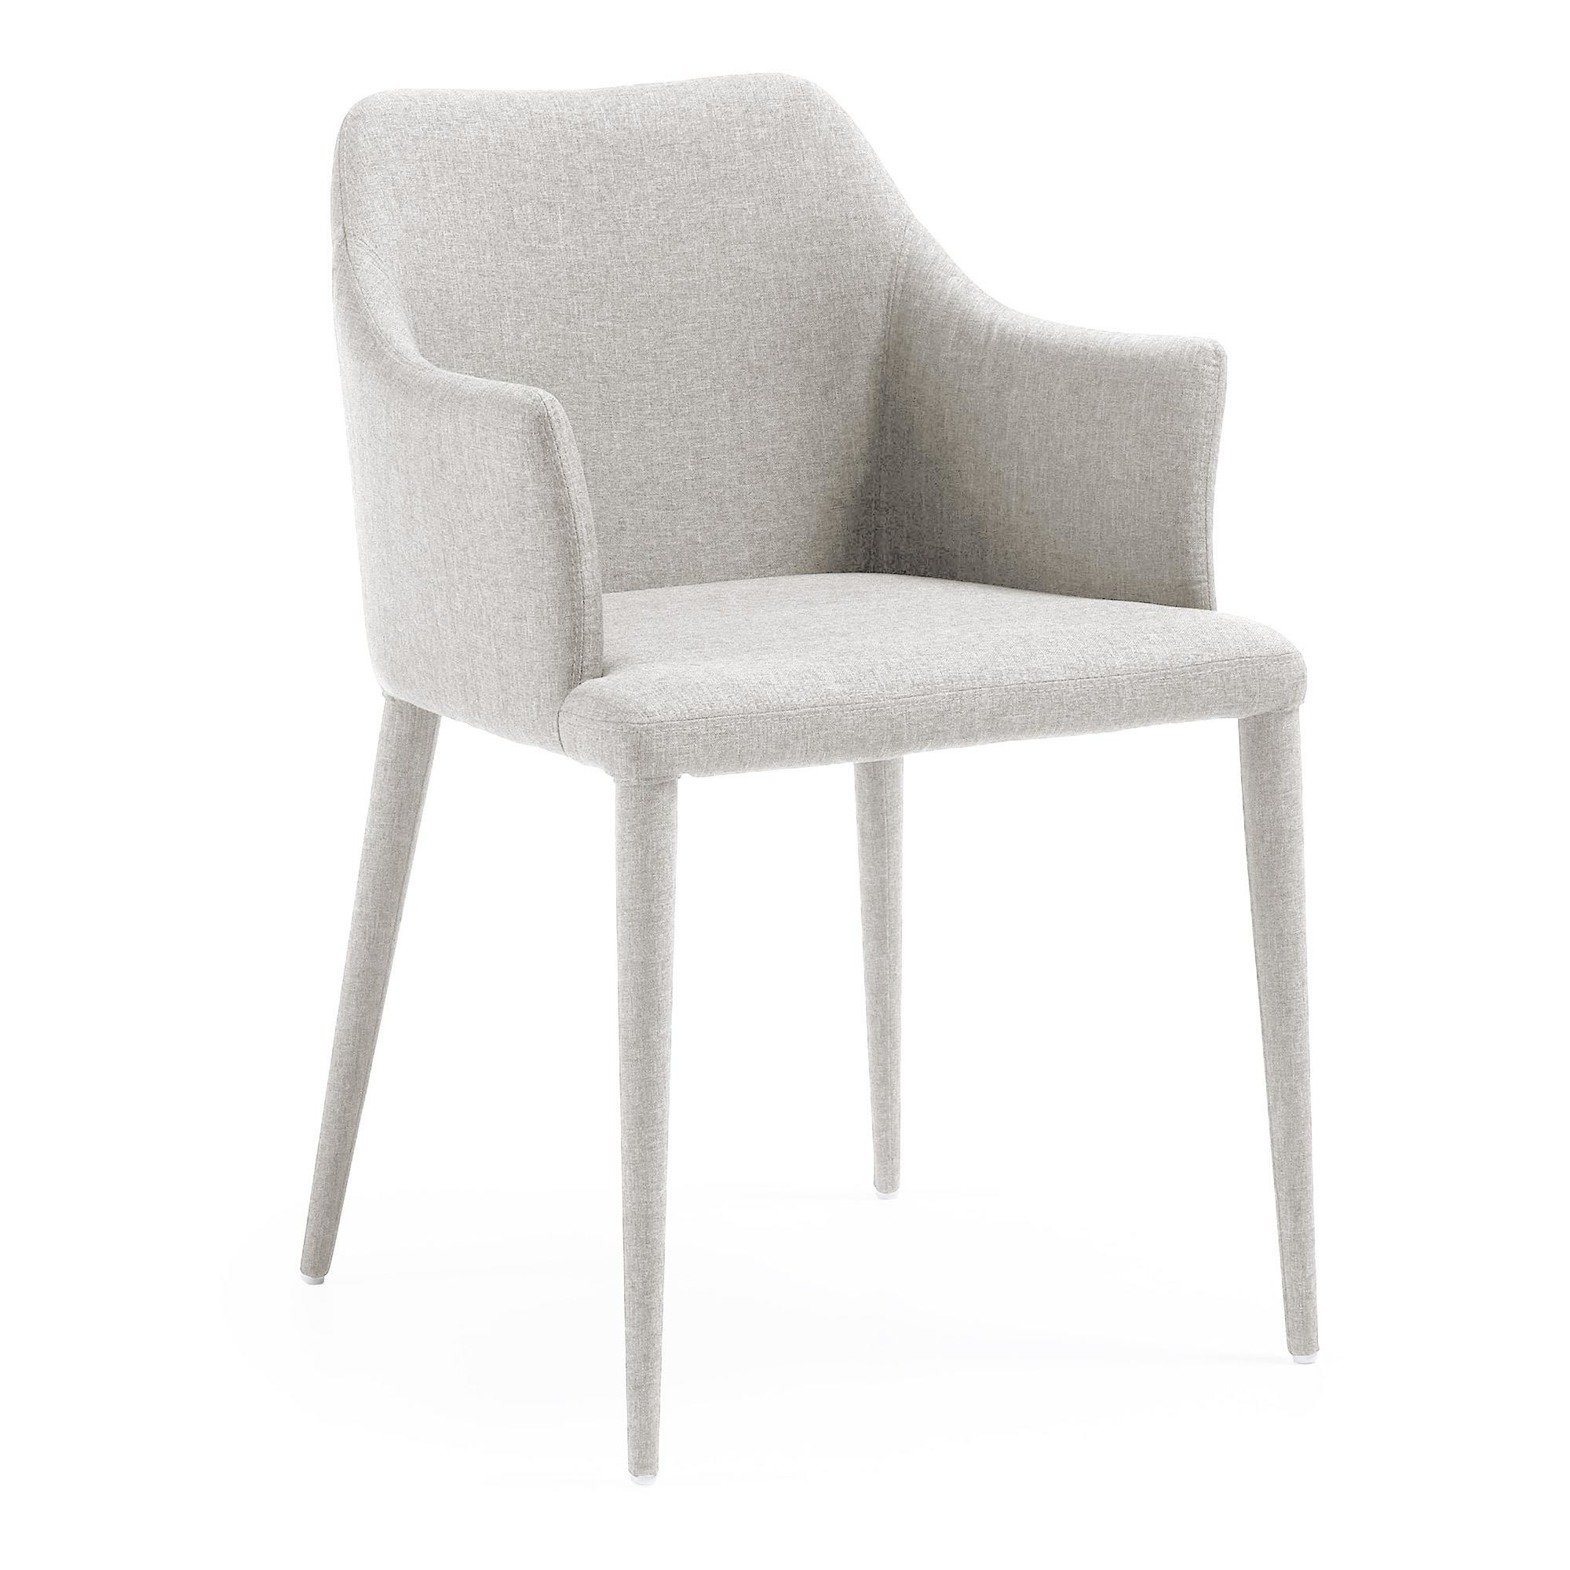 DANAI light gray chair